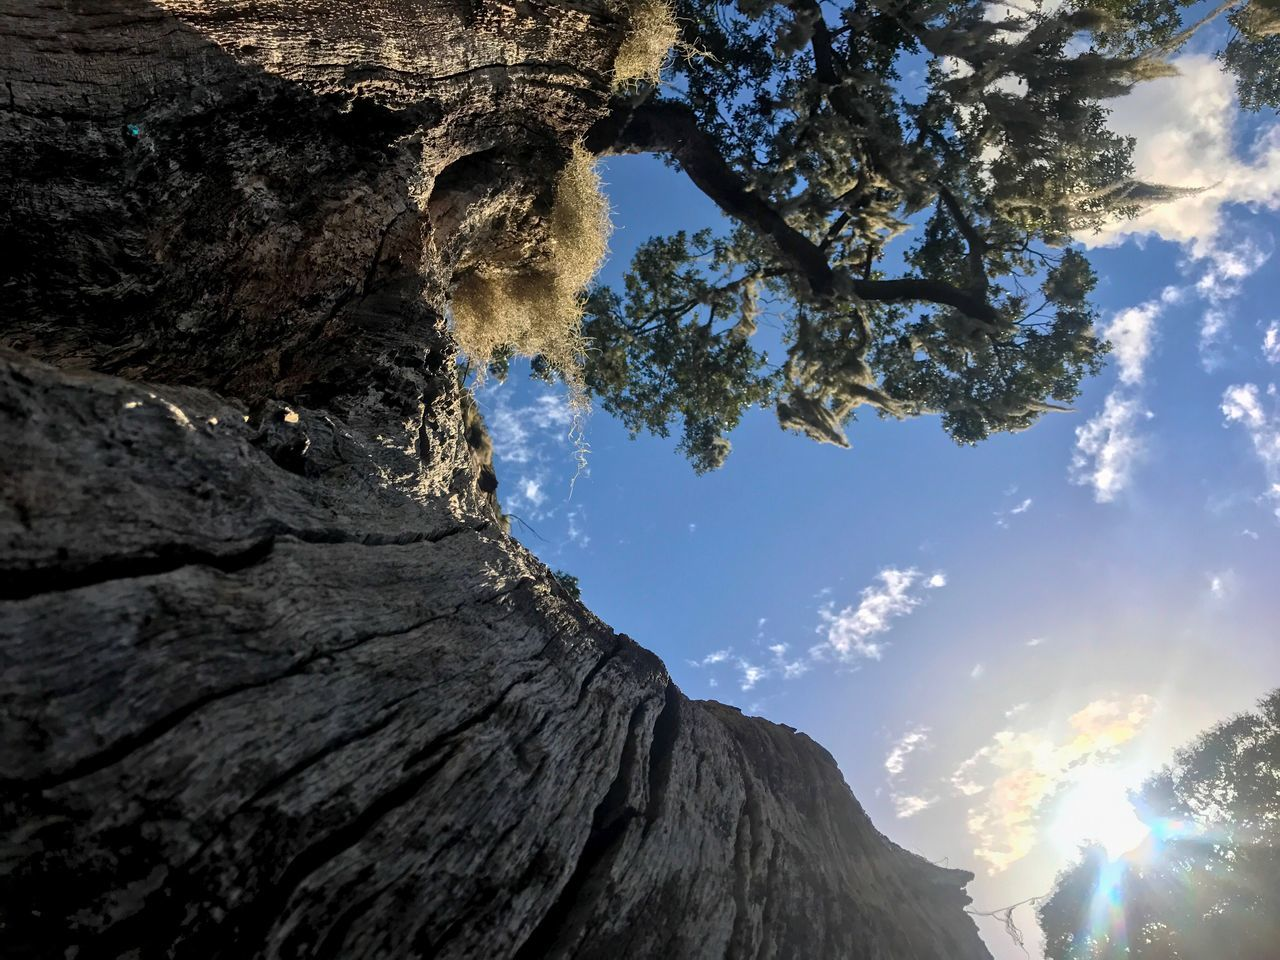 tree, nature, low angle view, beauty in nature, tree trunk, sky, mountain, sunlight, tranquility, day, no people, outdoors, scenics, branch